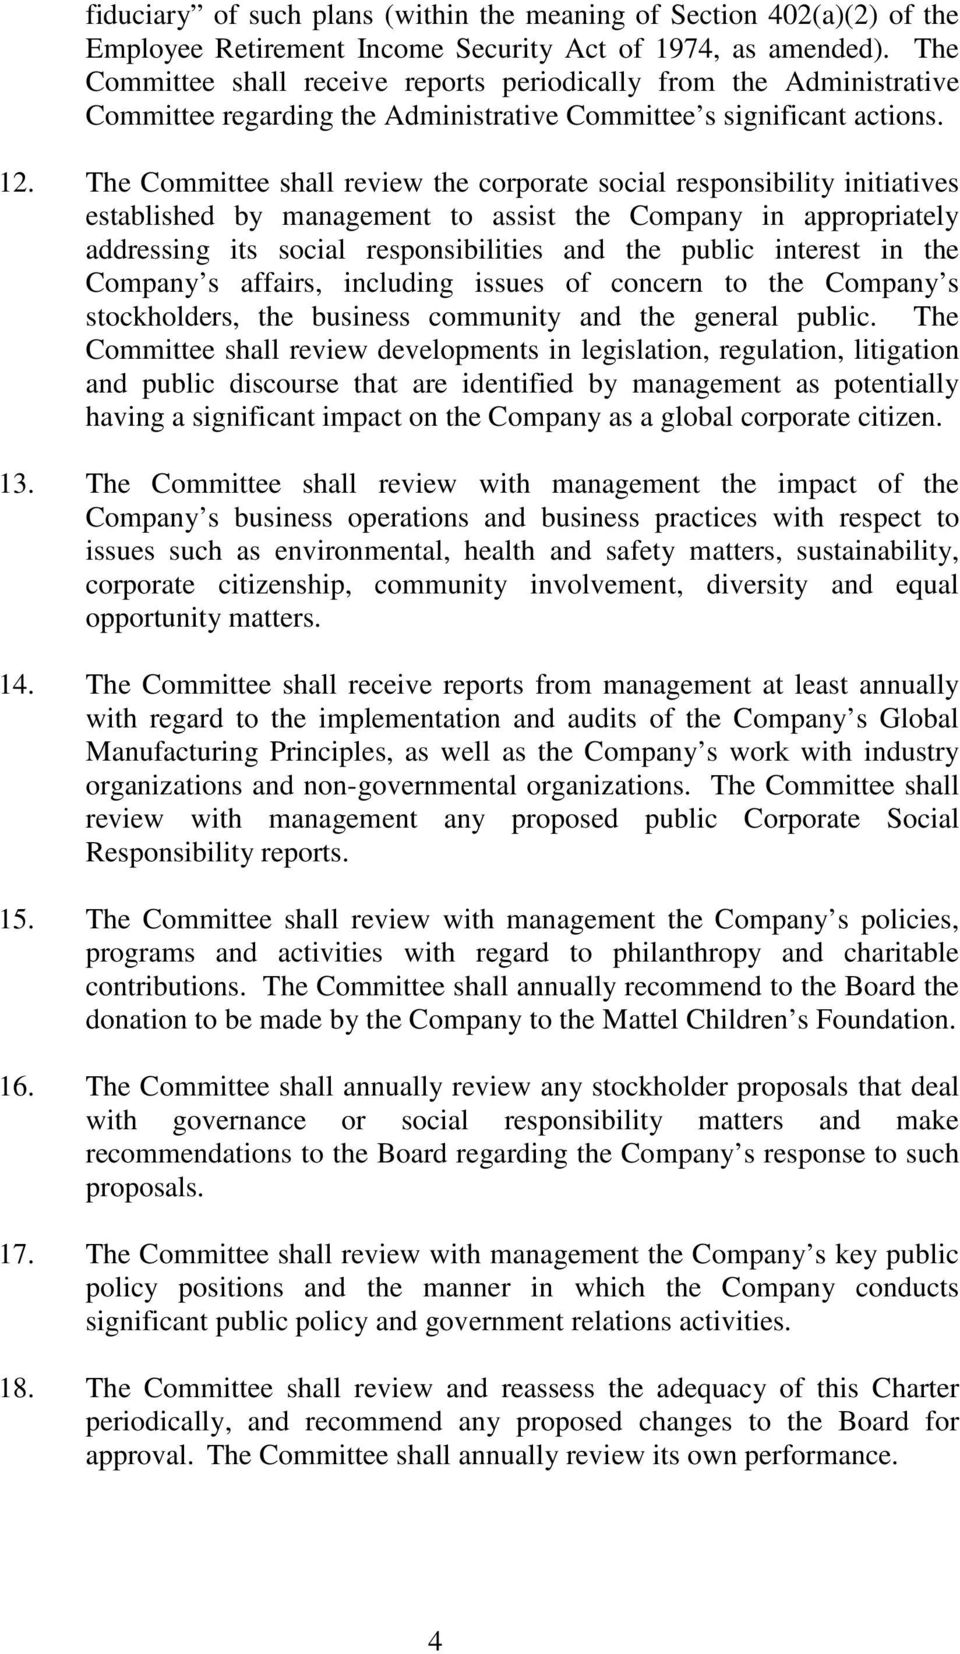 The Committee shall review the corporate social responsibility initiatives established by management to assist the Company in appropriately addressing its social responsibilities and the public